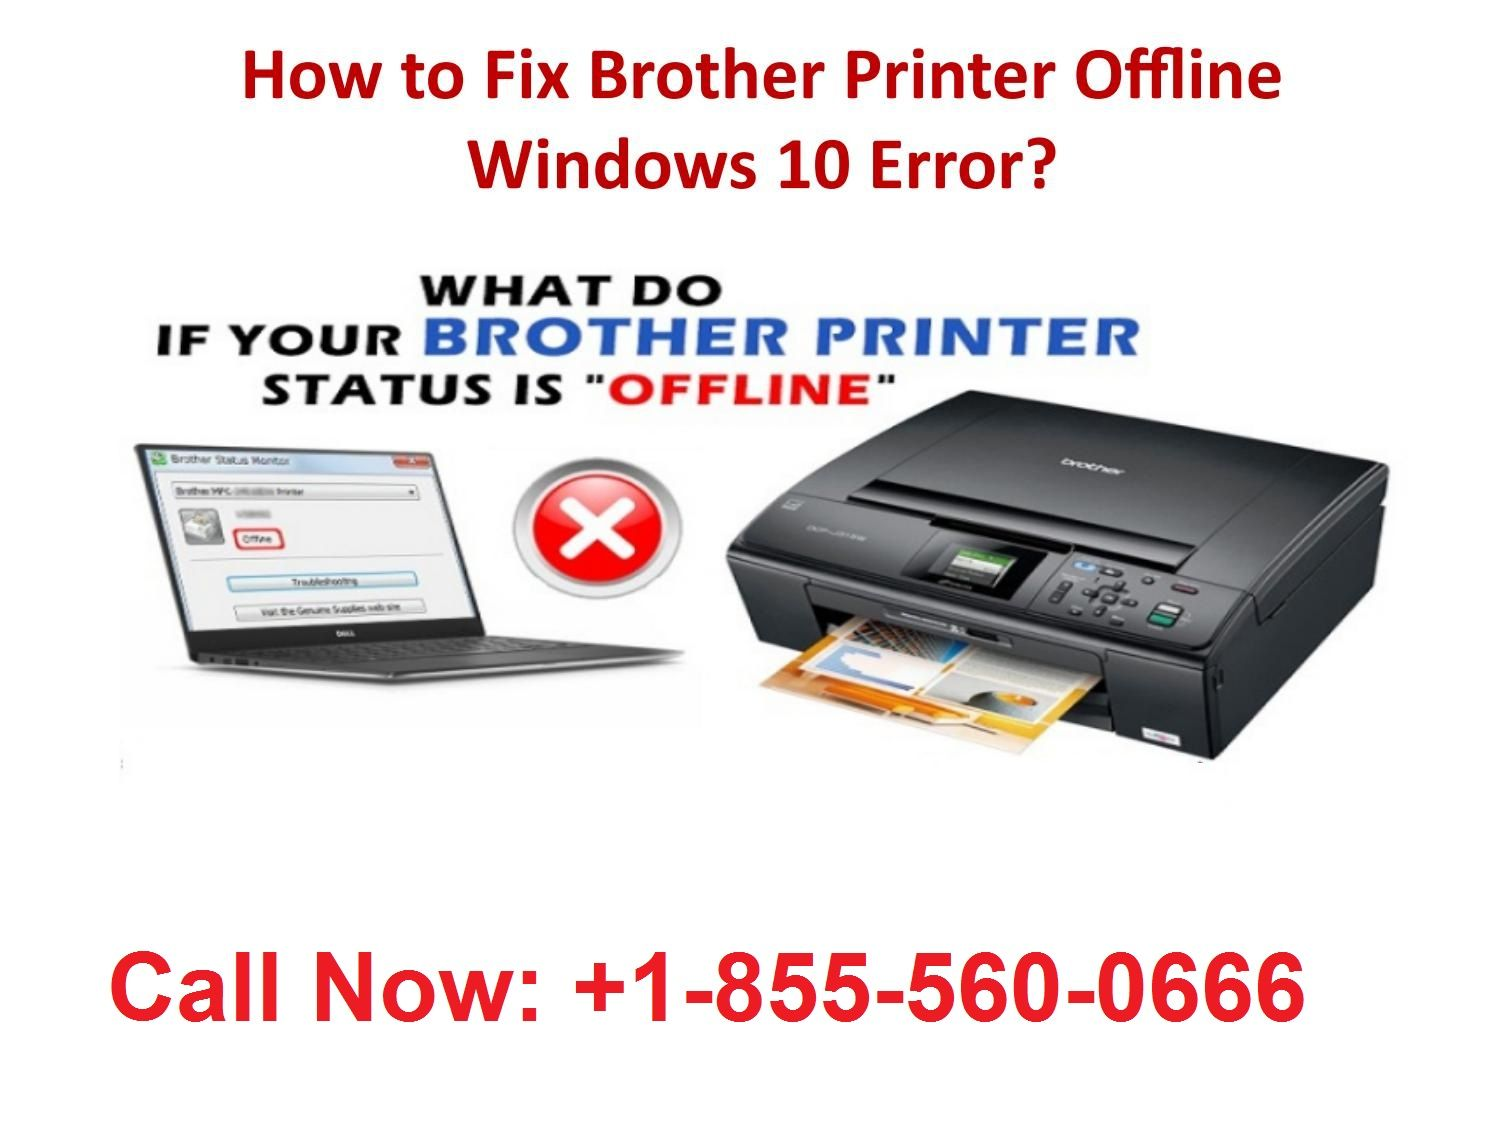 Brother printer tech support 18555600666phone number